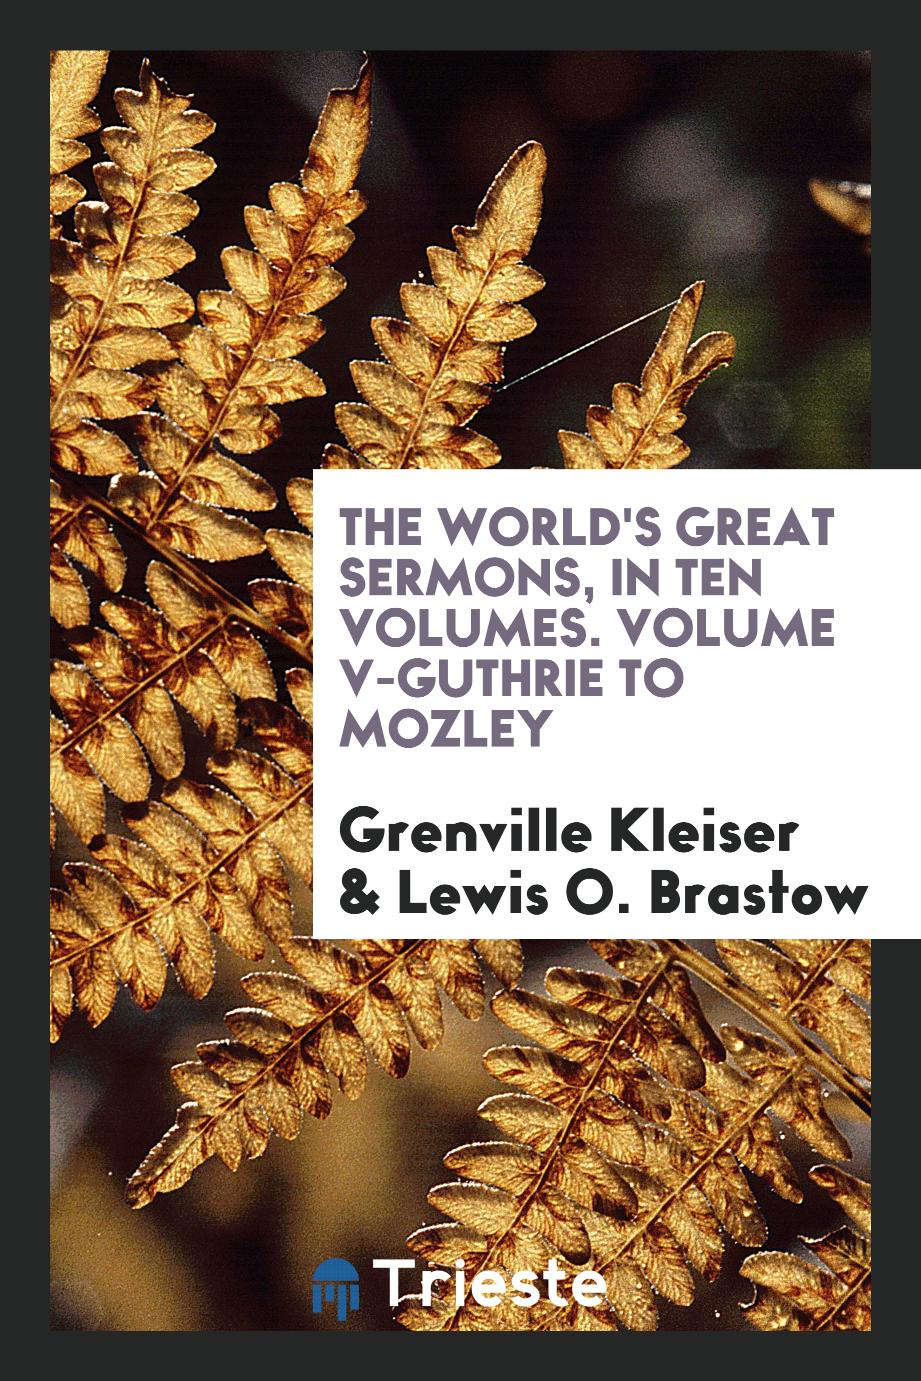 The World's Great Sermons, in Ten Volumes. Volume V-Guthrie to Mozley